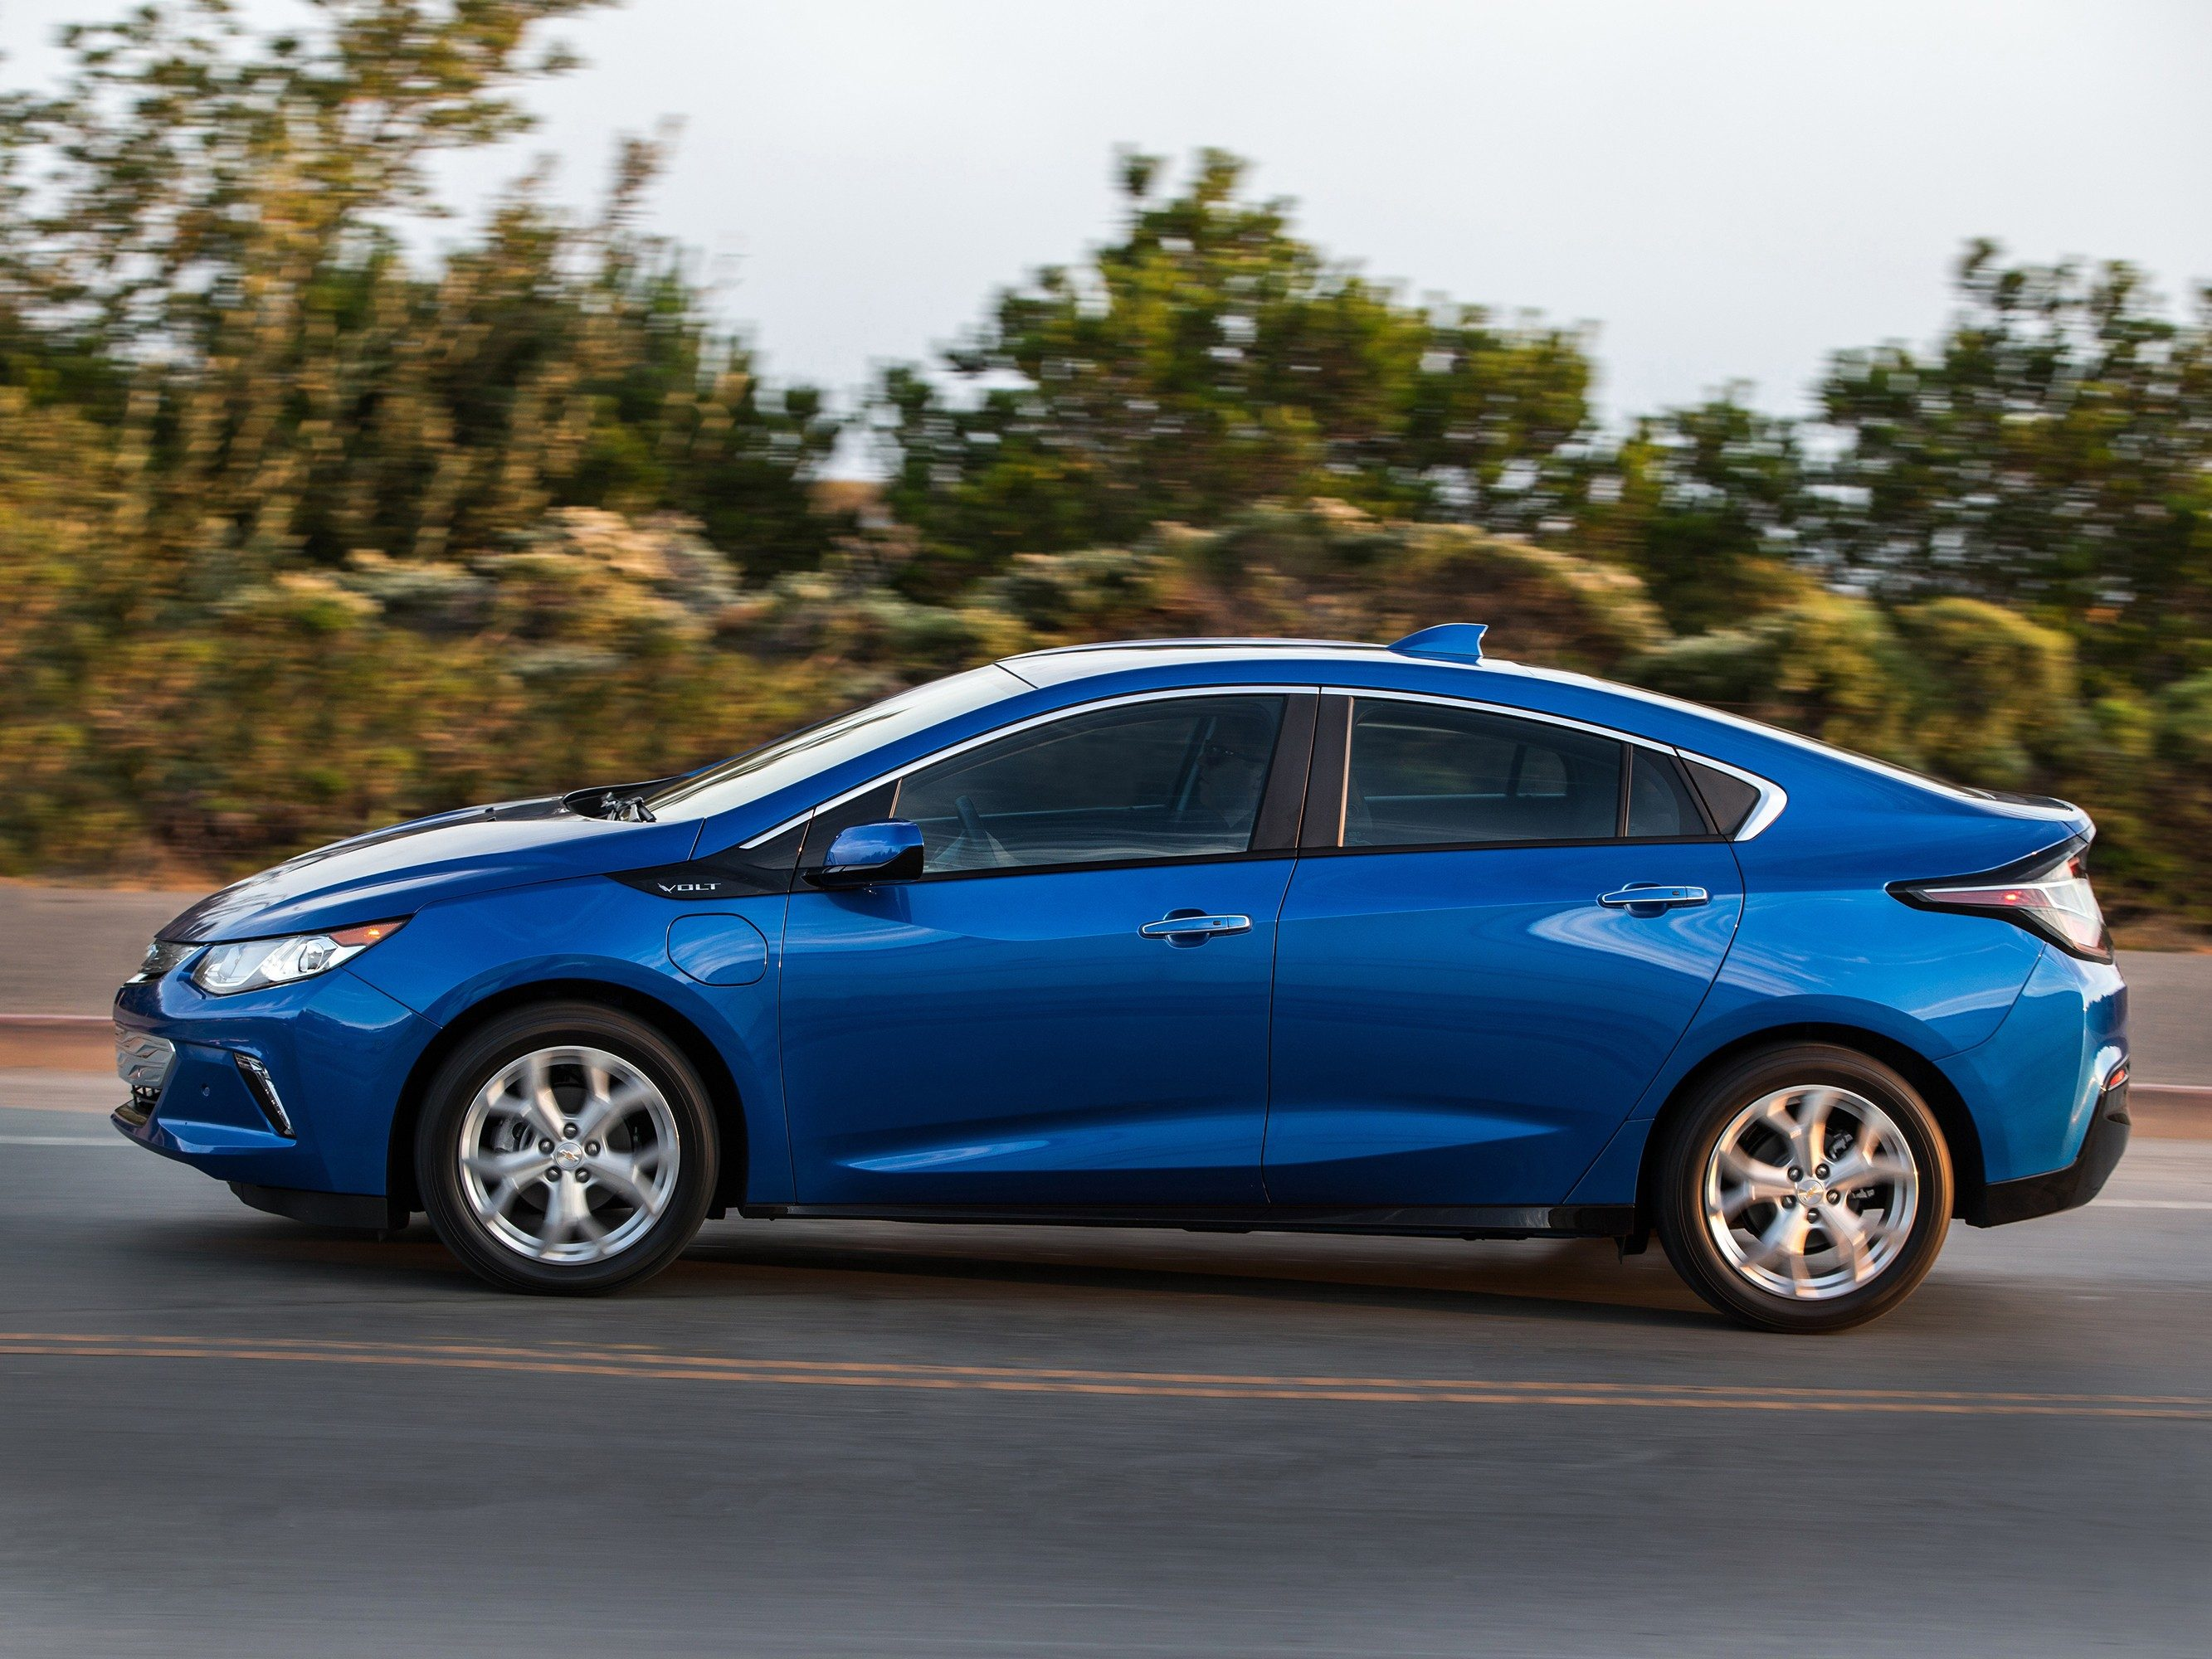 Introducing the 2016 Chevrolet Volt